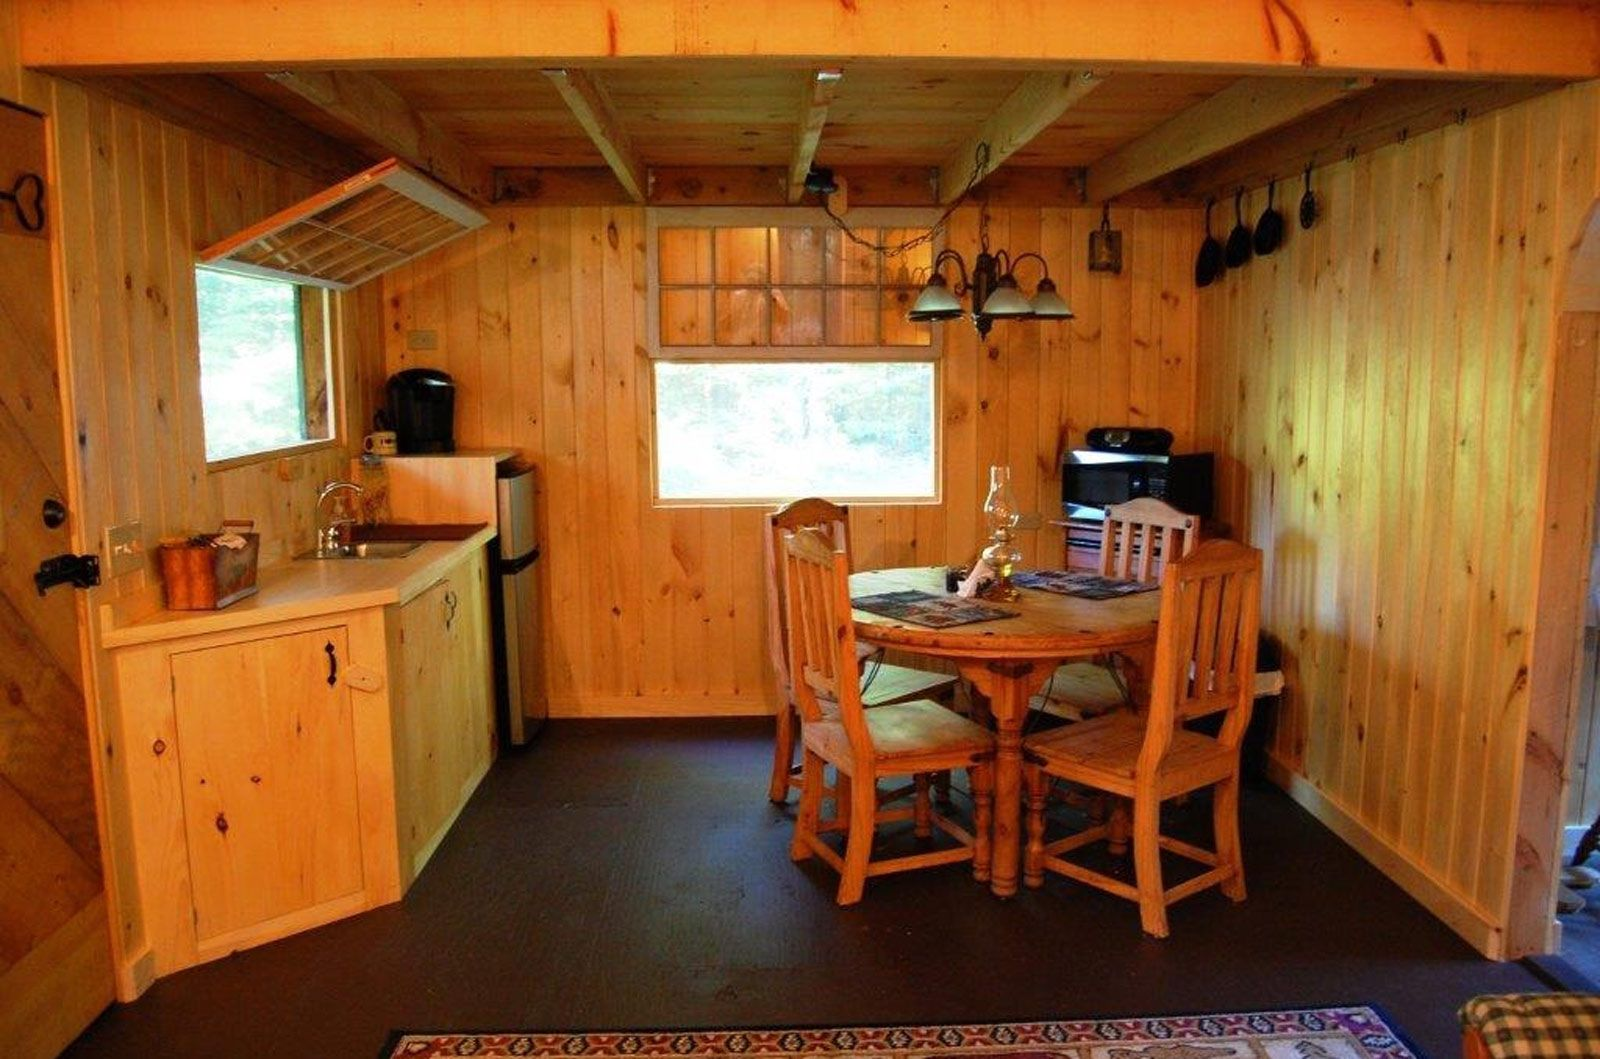 Find an array of affordable tiny house plans, small cabin kits ...